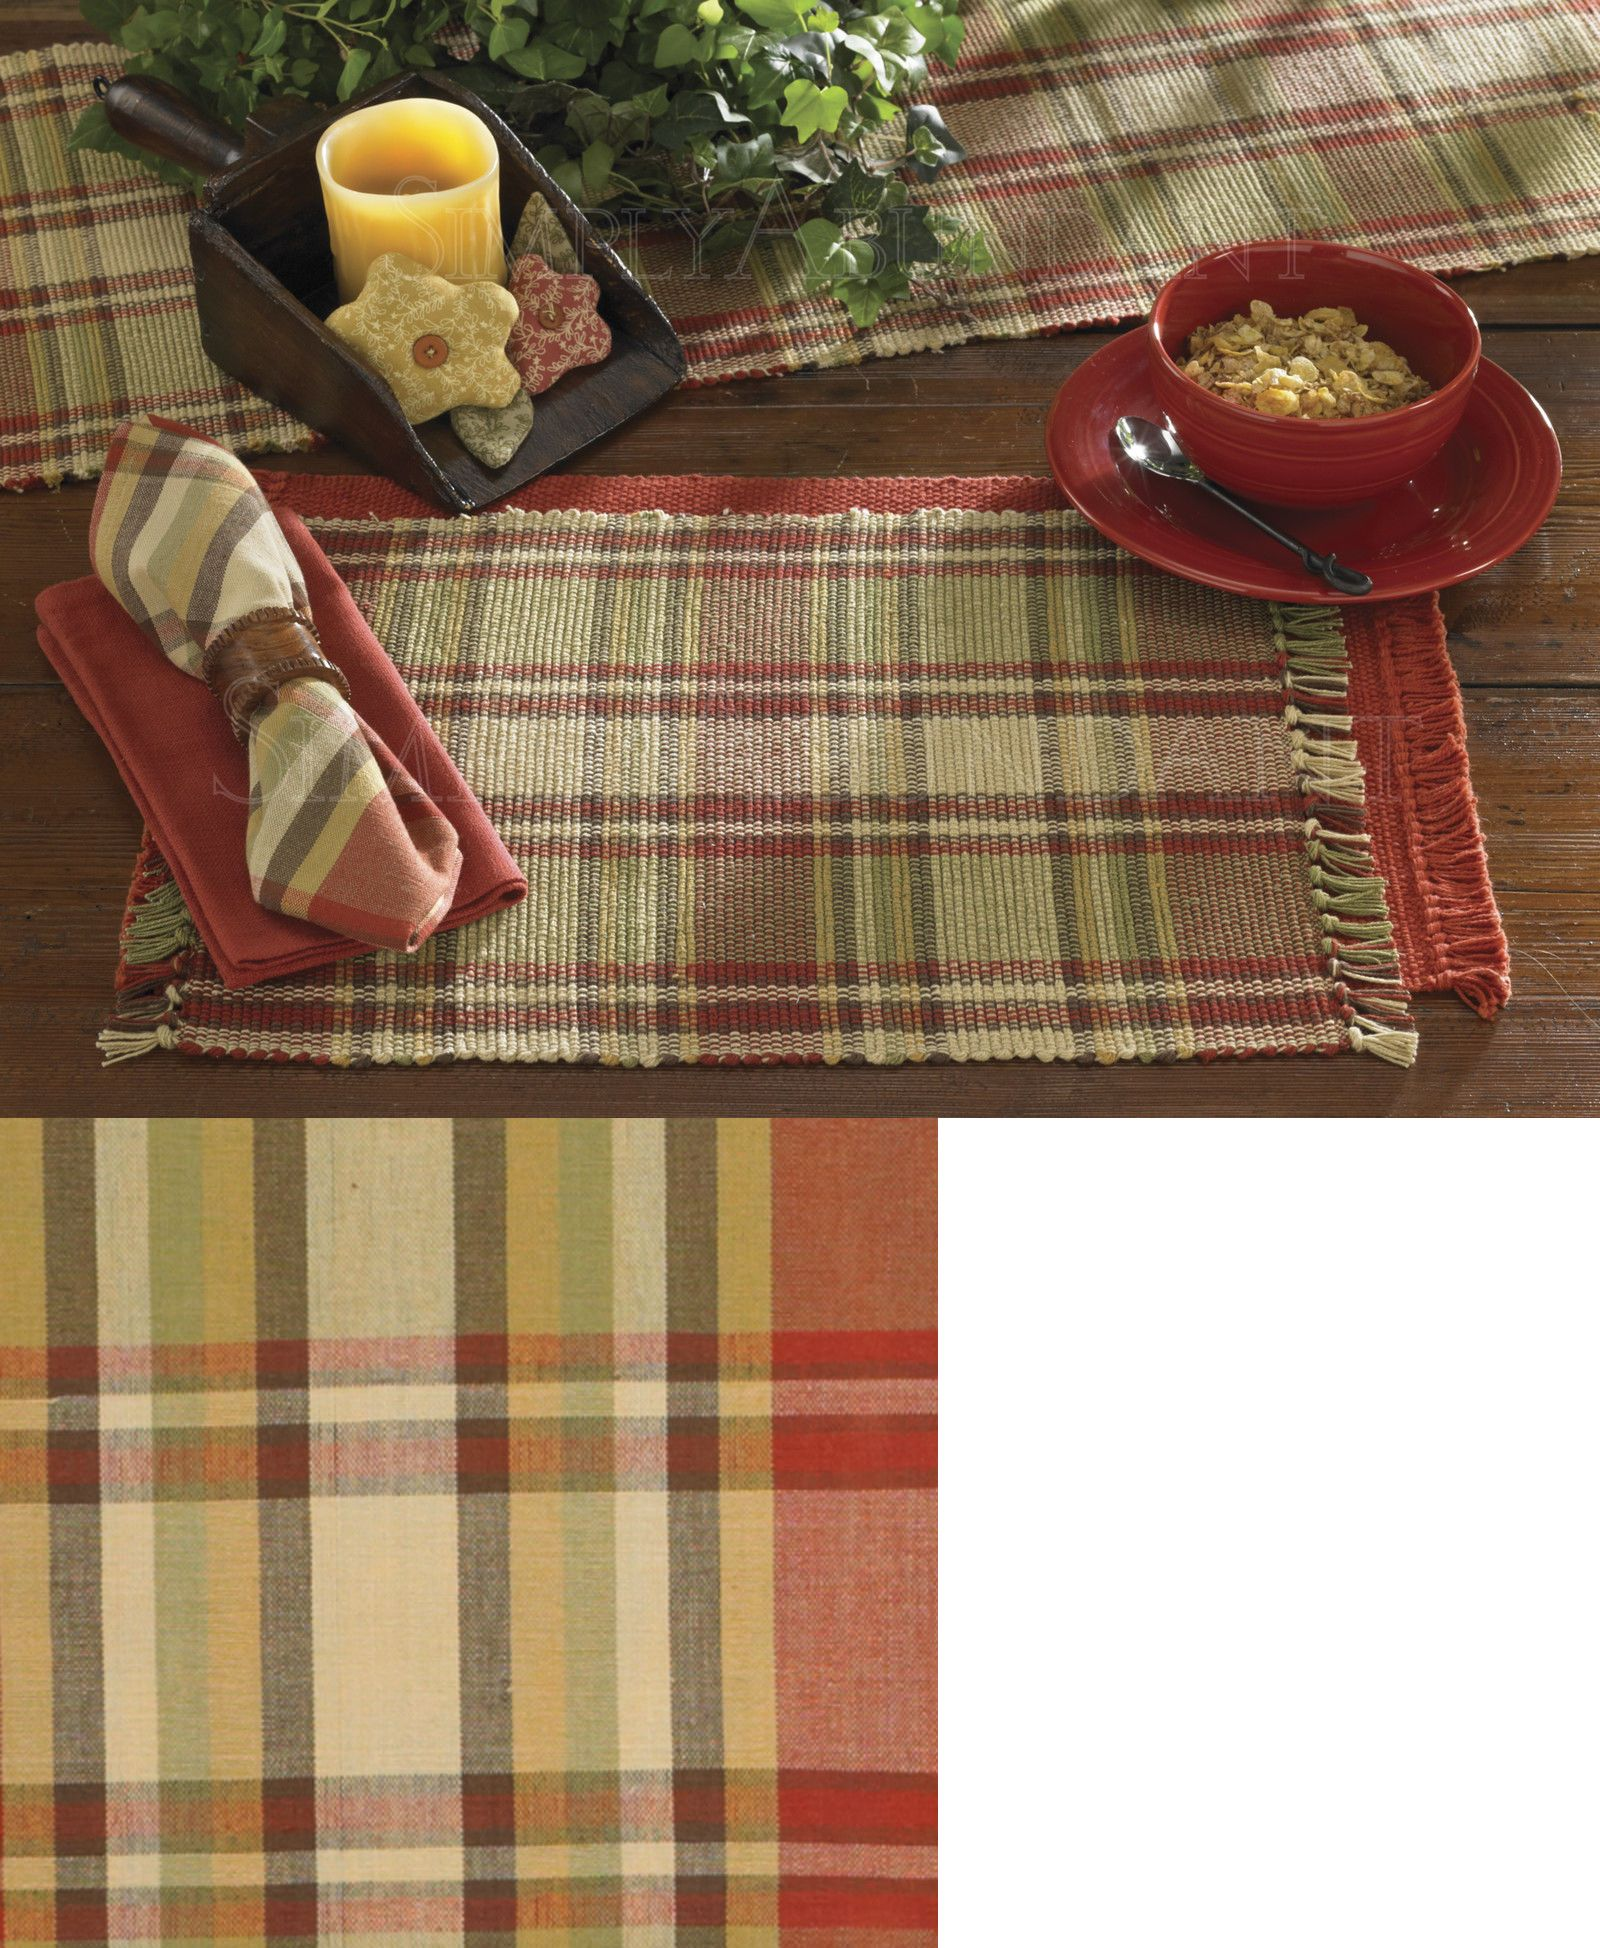 Table Linen Sets 71238 Heartfelt Placemats And Napkins By Park Designs Warm Country Plaid & Table Linen Sets 71238: Heartfelt Placemats And Napkins By Park ...